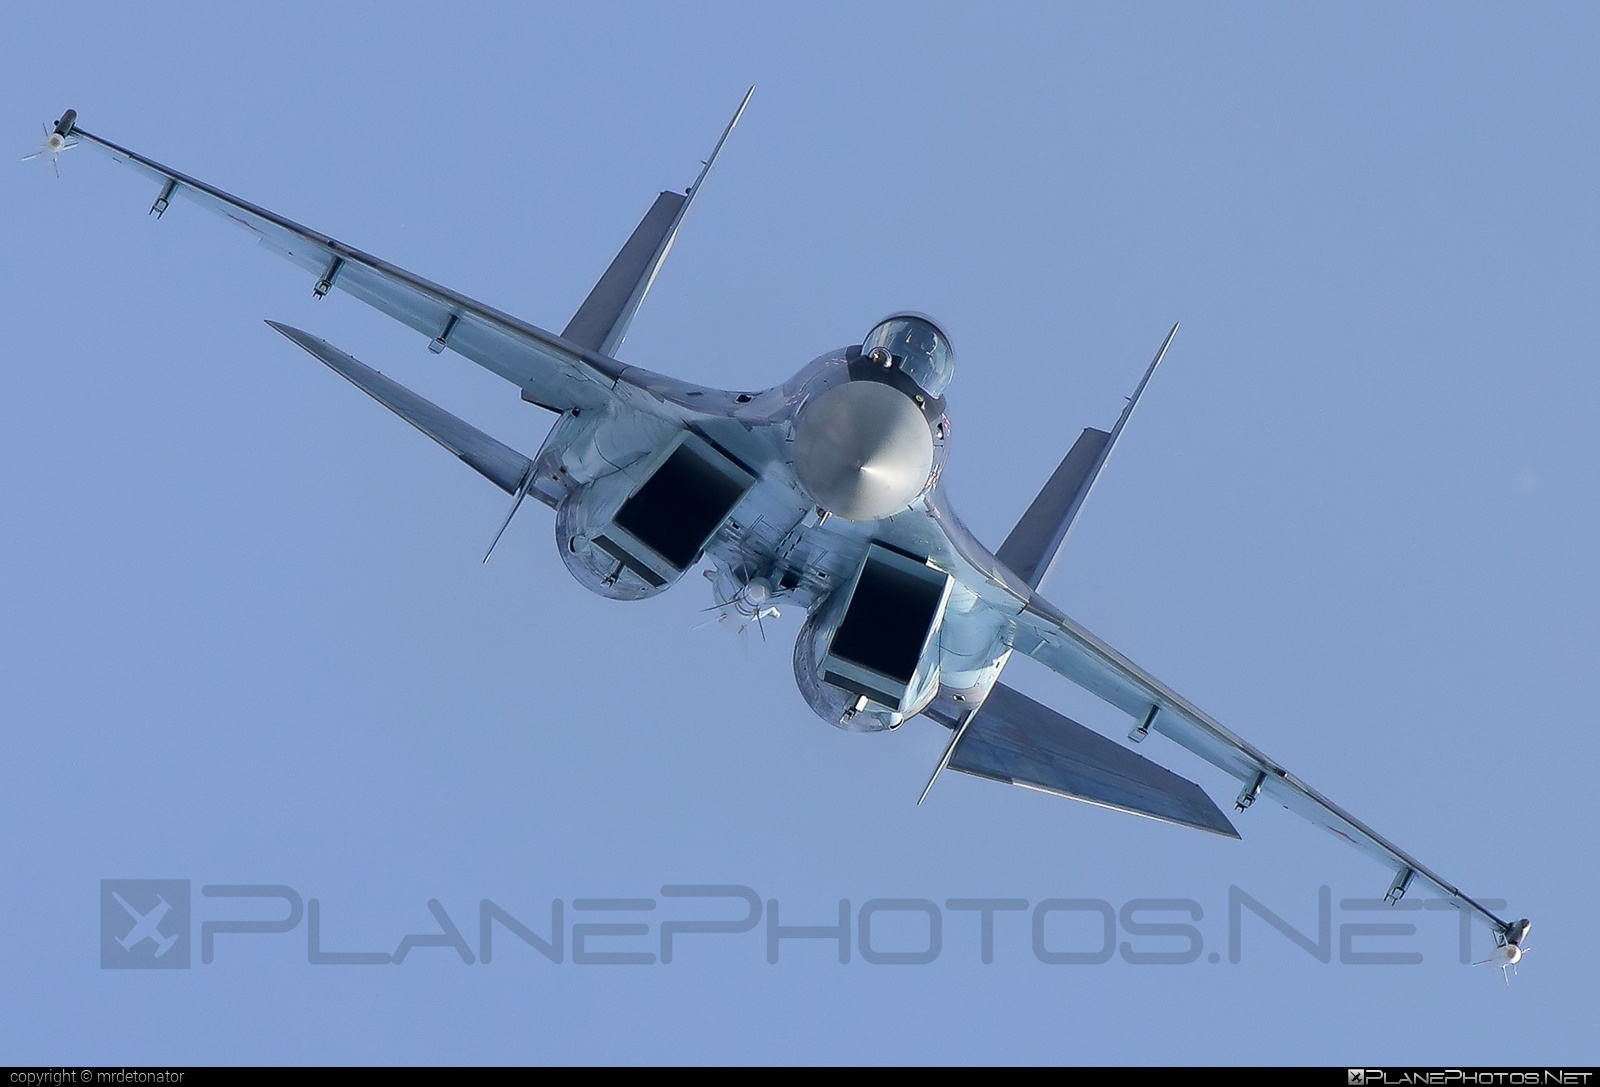 Sukhoi Su-35S - 03 operated by Voyenno-vozdushnye sily Rossii (Russian Air Force) #sukhoi